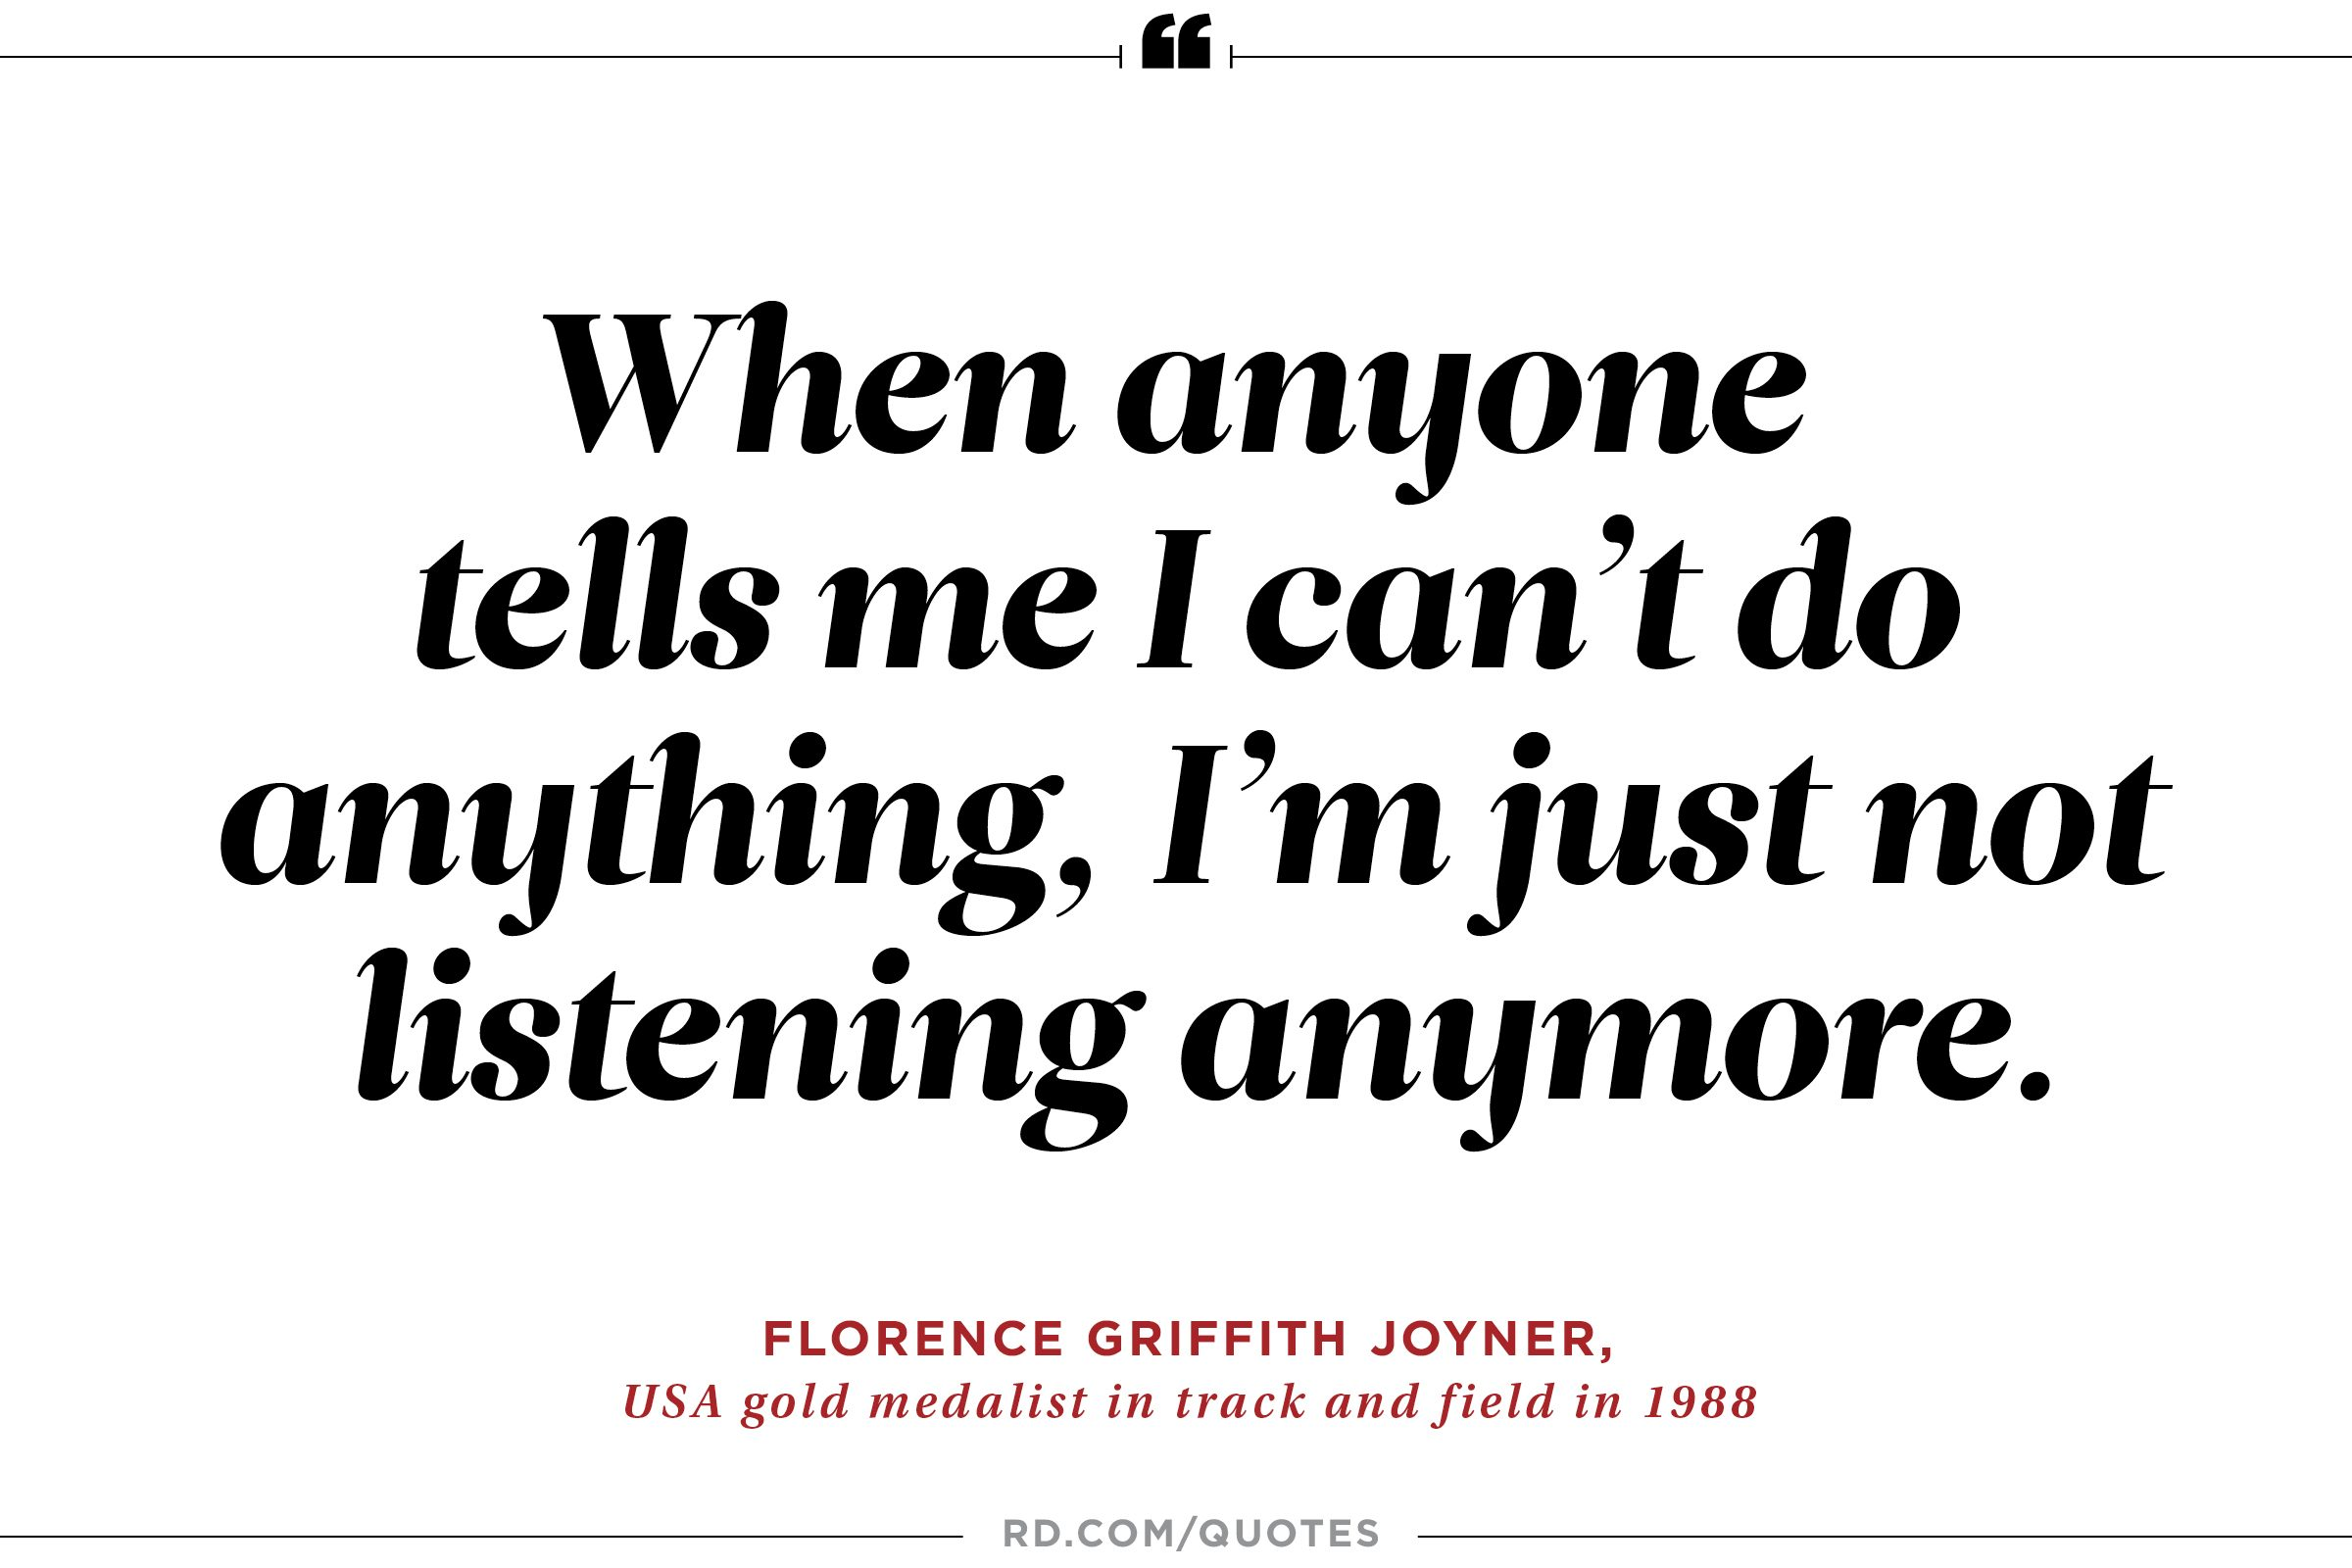 Florence Griffith Joyner On Self Confidence In The Face Of Adversity